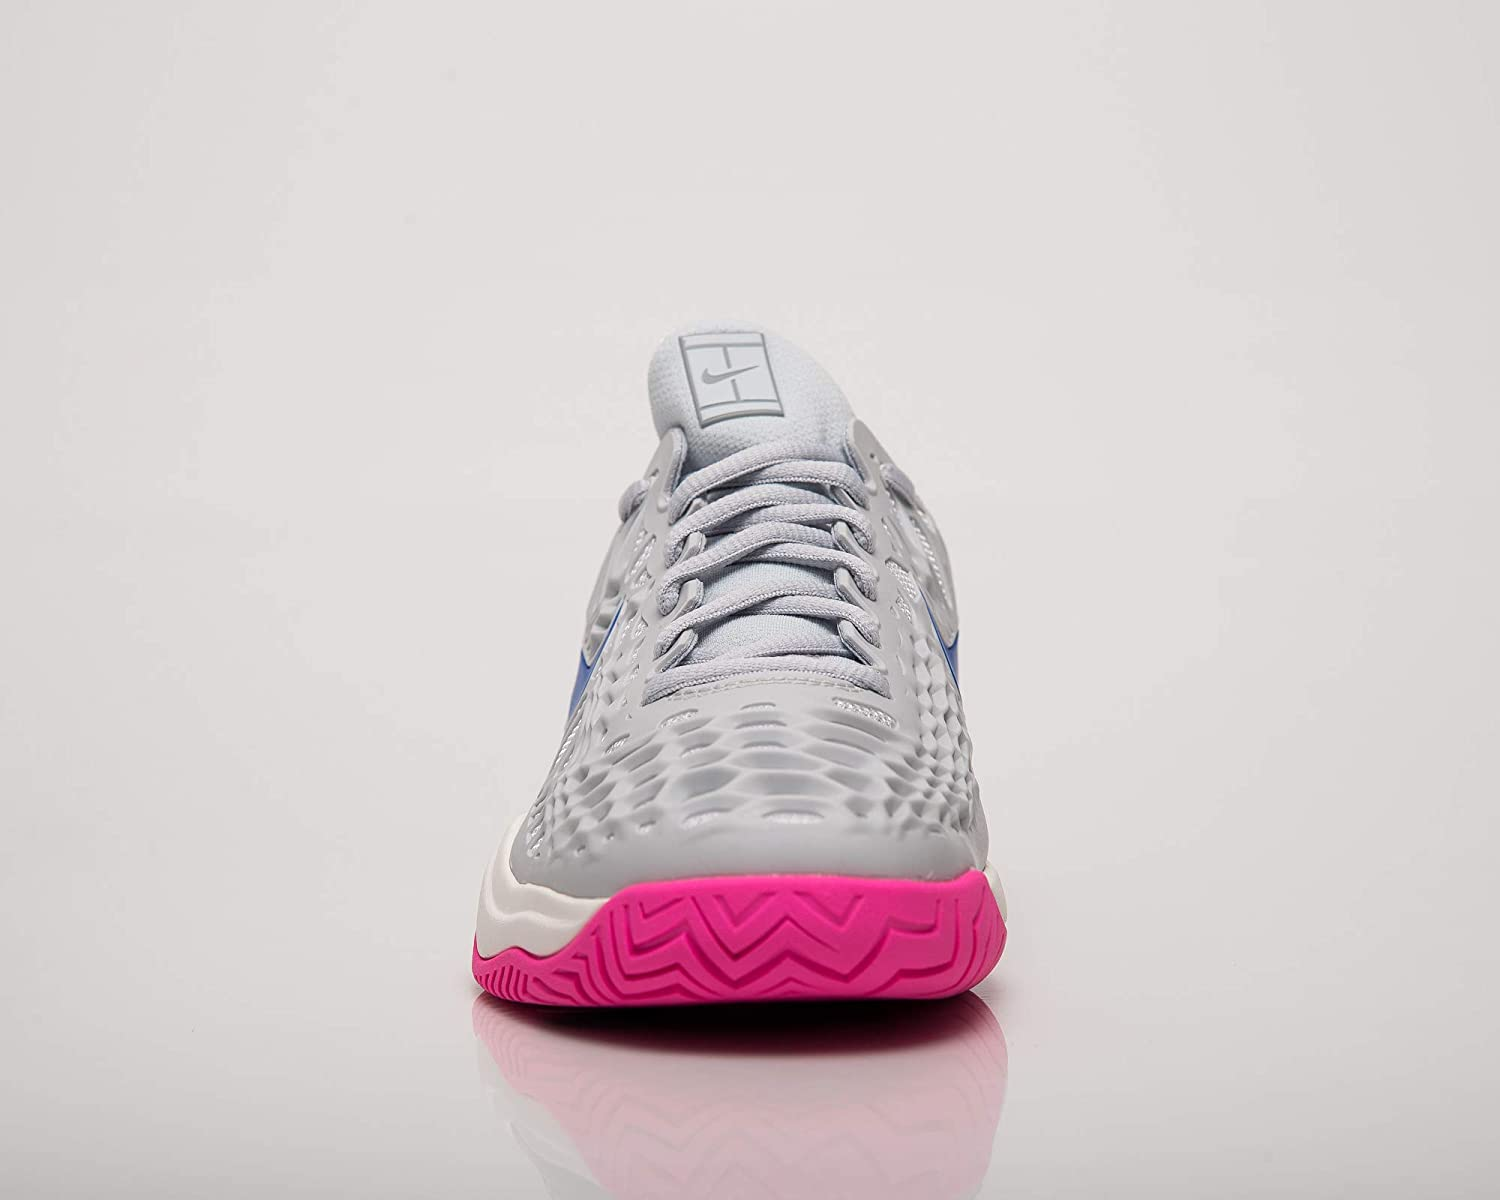 Nike Womens WMNS Air Zoom Cage 3 Hc Tennis Shoes